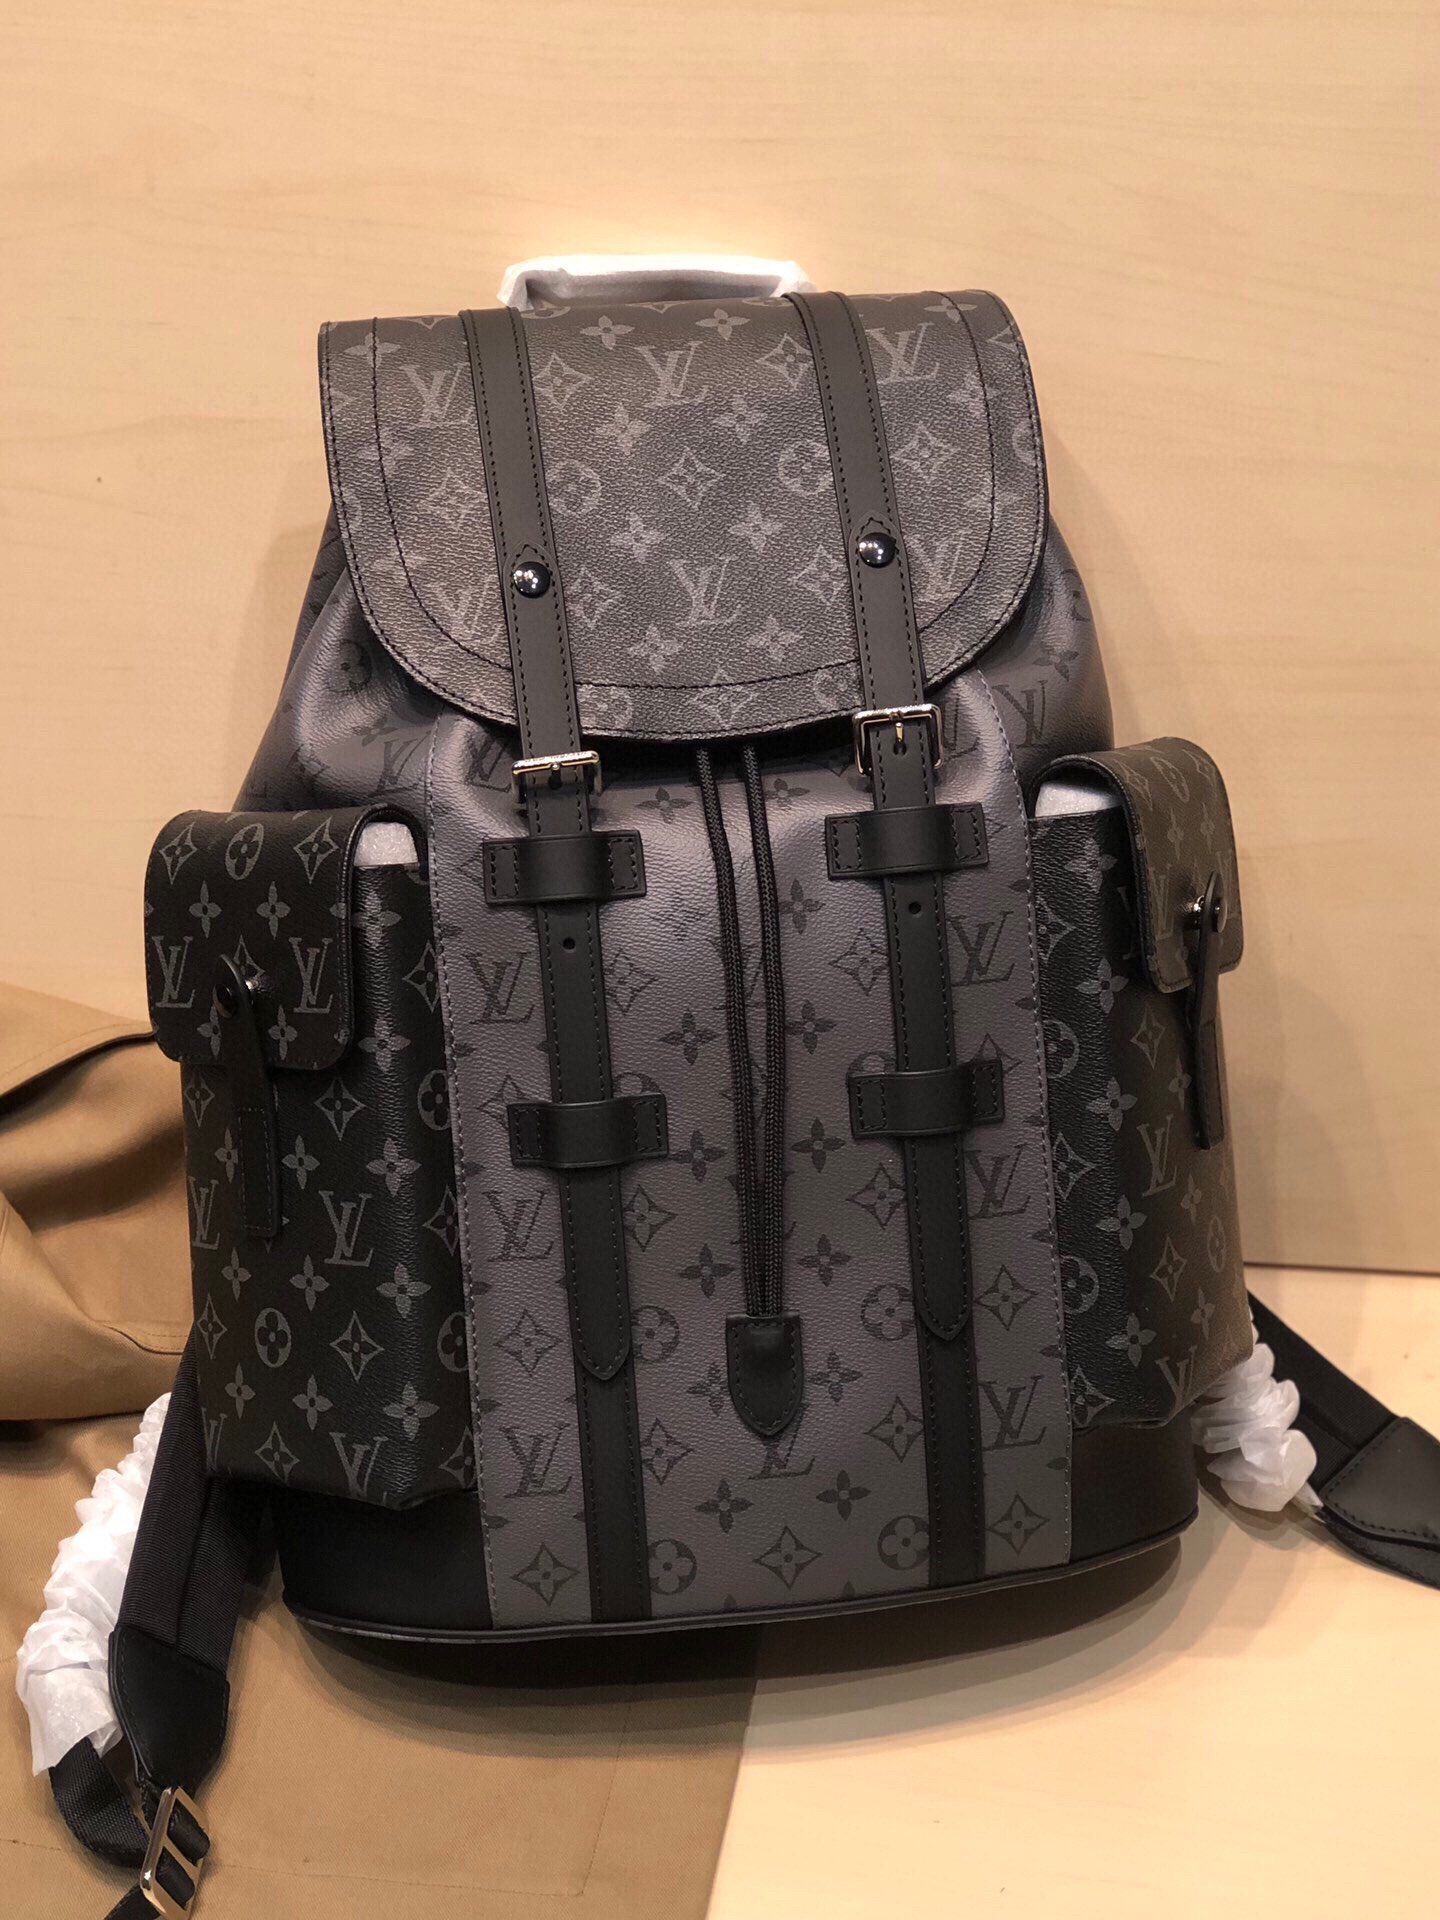 Replica Louis Vuitton M45419 Christopher PM Monogram Eclipse Coated Canvas and Monogram Eclipse Reverse Coated Canvas